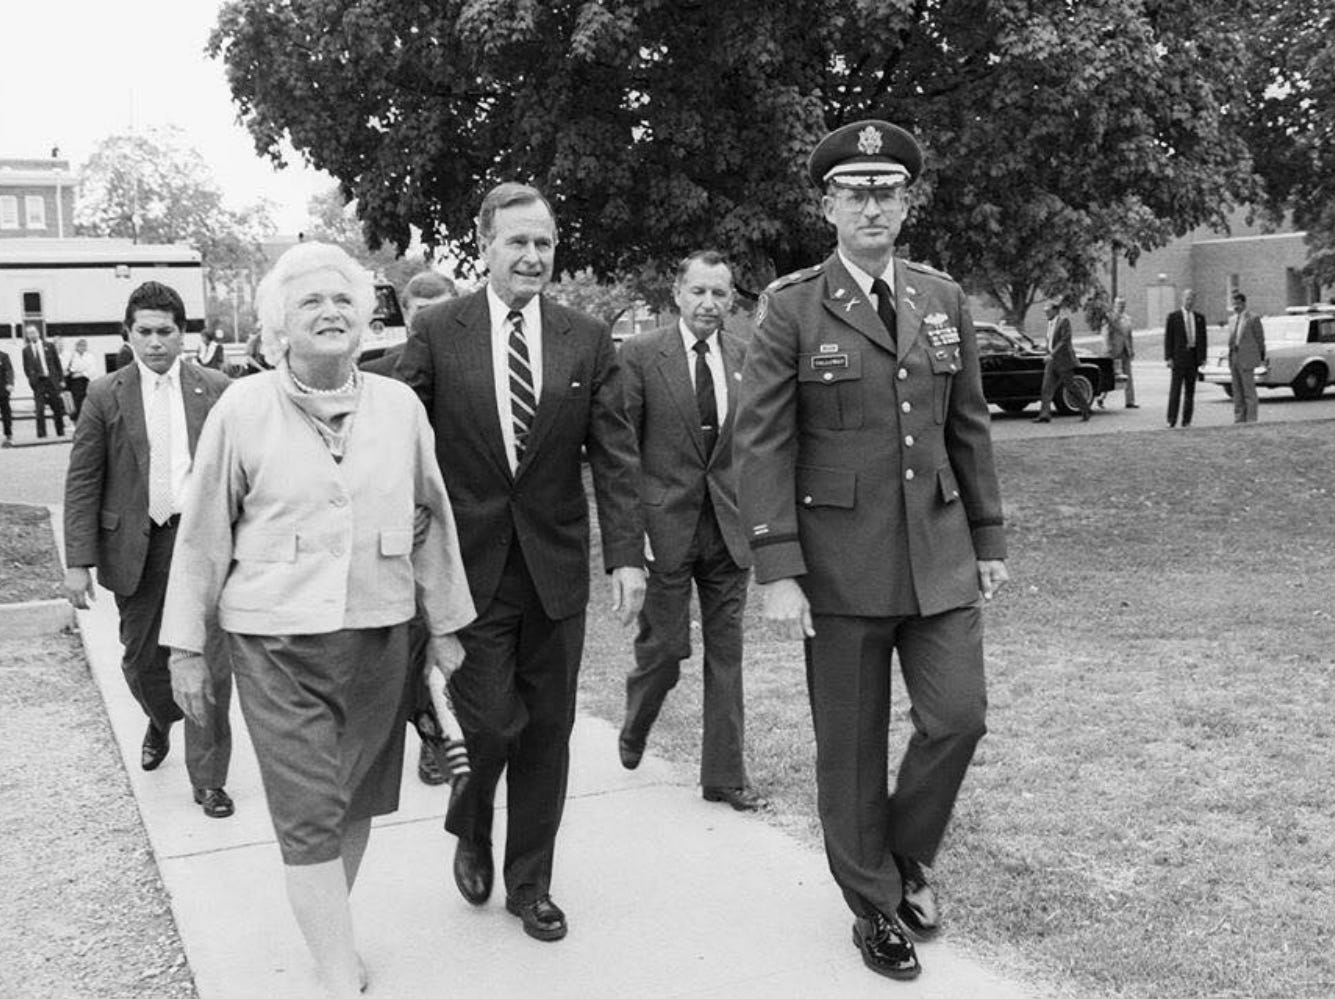 In this Aug. 29, 1988, file photo, Vice President George H.W. Bush, center left, and his wife, Barbara Bush, walk with Lt. Col. Cal Calloway, far right, MTSU Department of Military Science chair, and then-MTSU President Sam Ingram, center right from a parking lot toward the campus ROTC building for a briefing and display. The Bushes were visiting MTSU as part of a fundraising trip to Nashville during the 1988 presidential campaign.